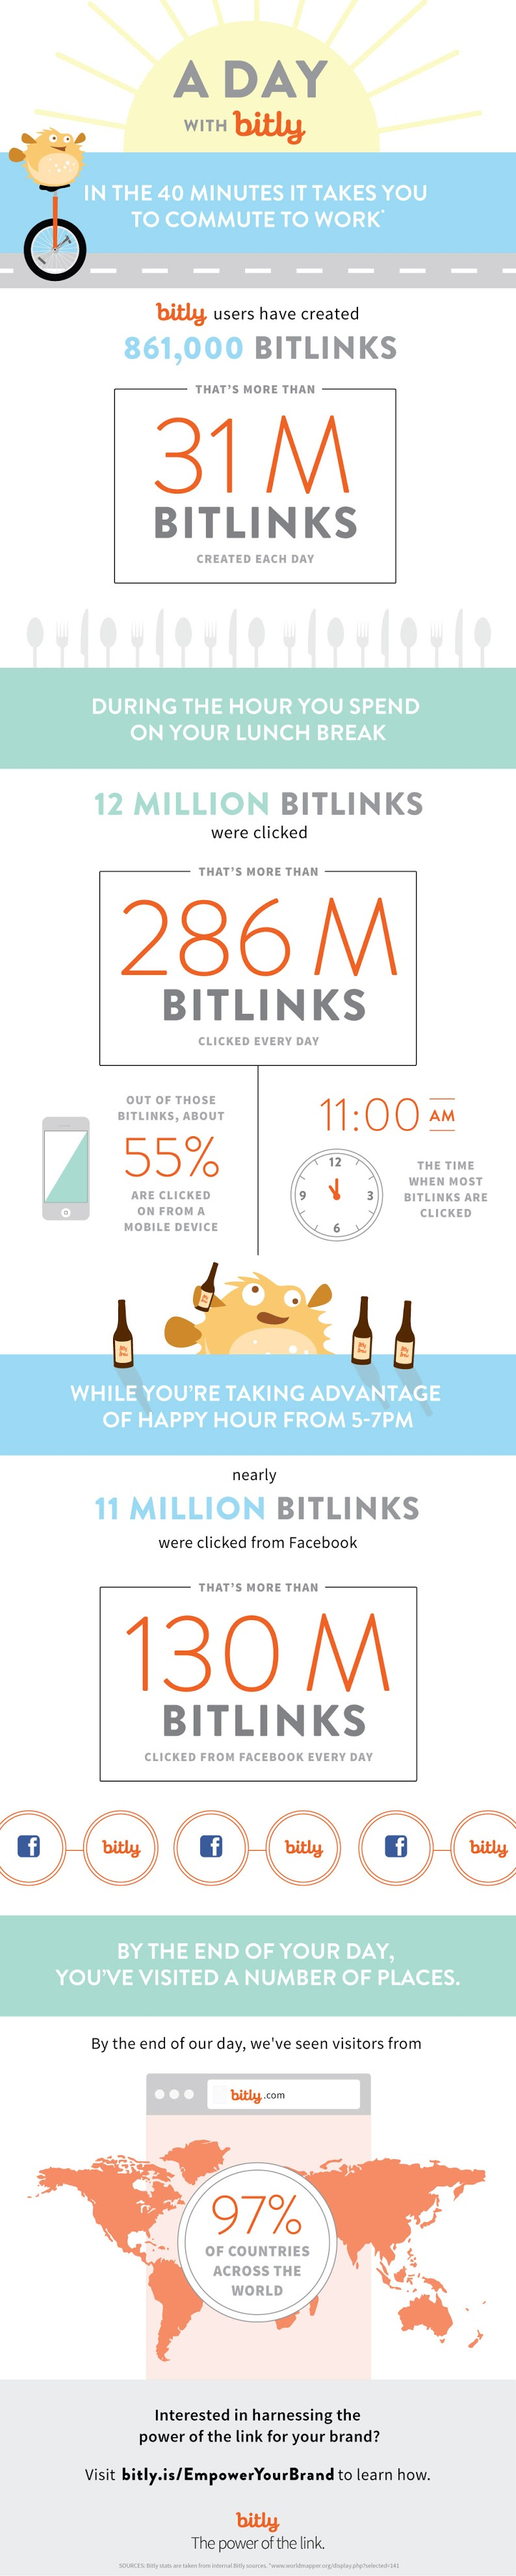 24 Hours With Bitly [Infographic]